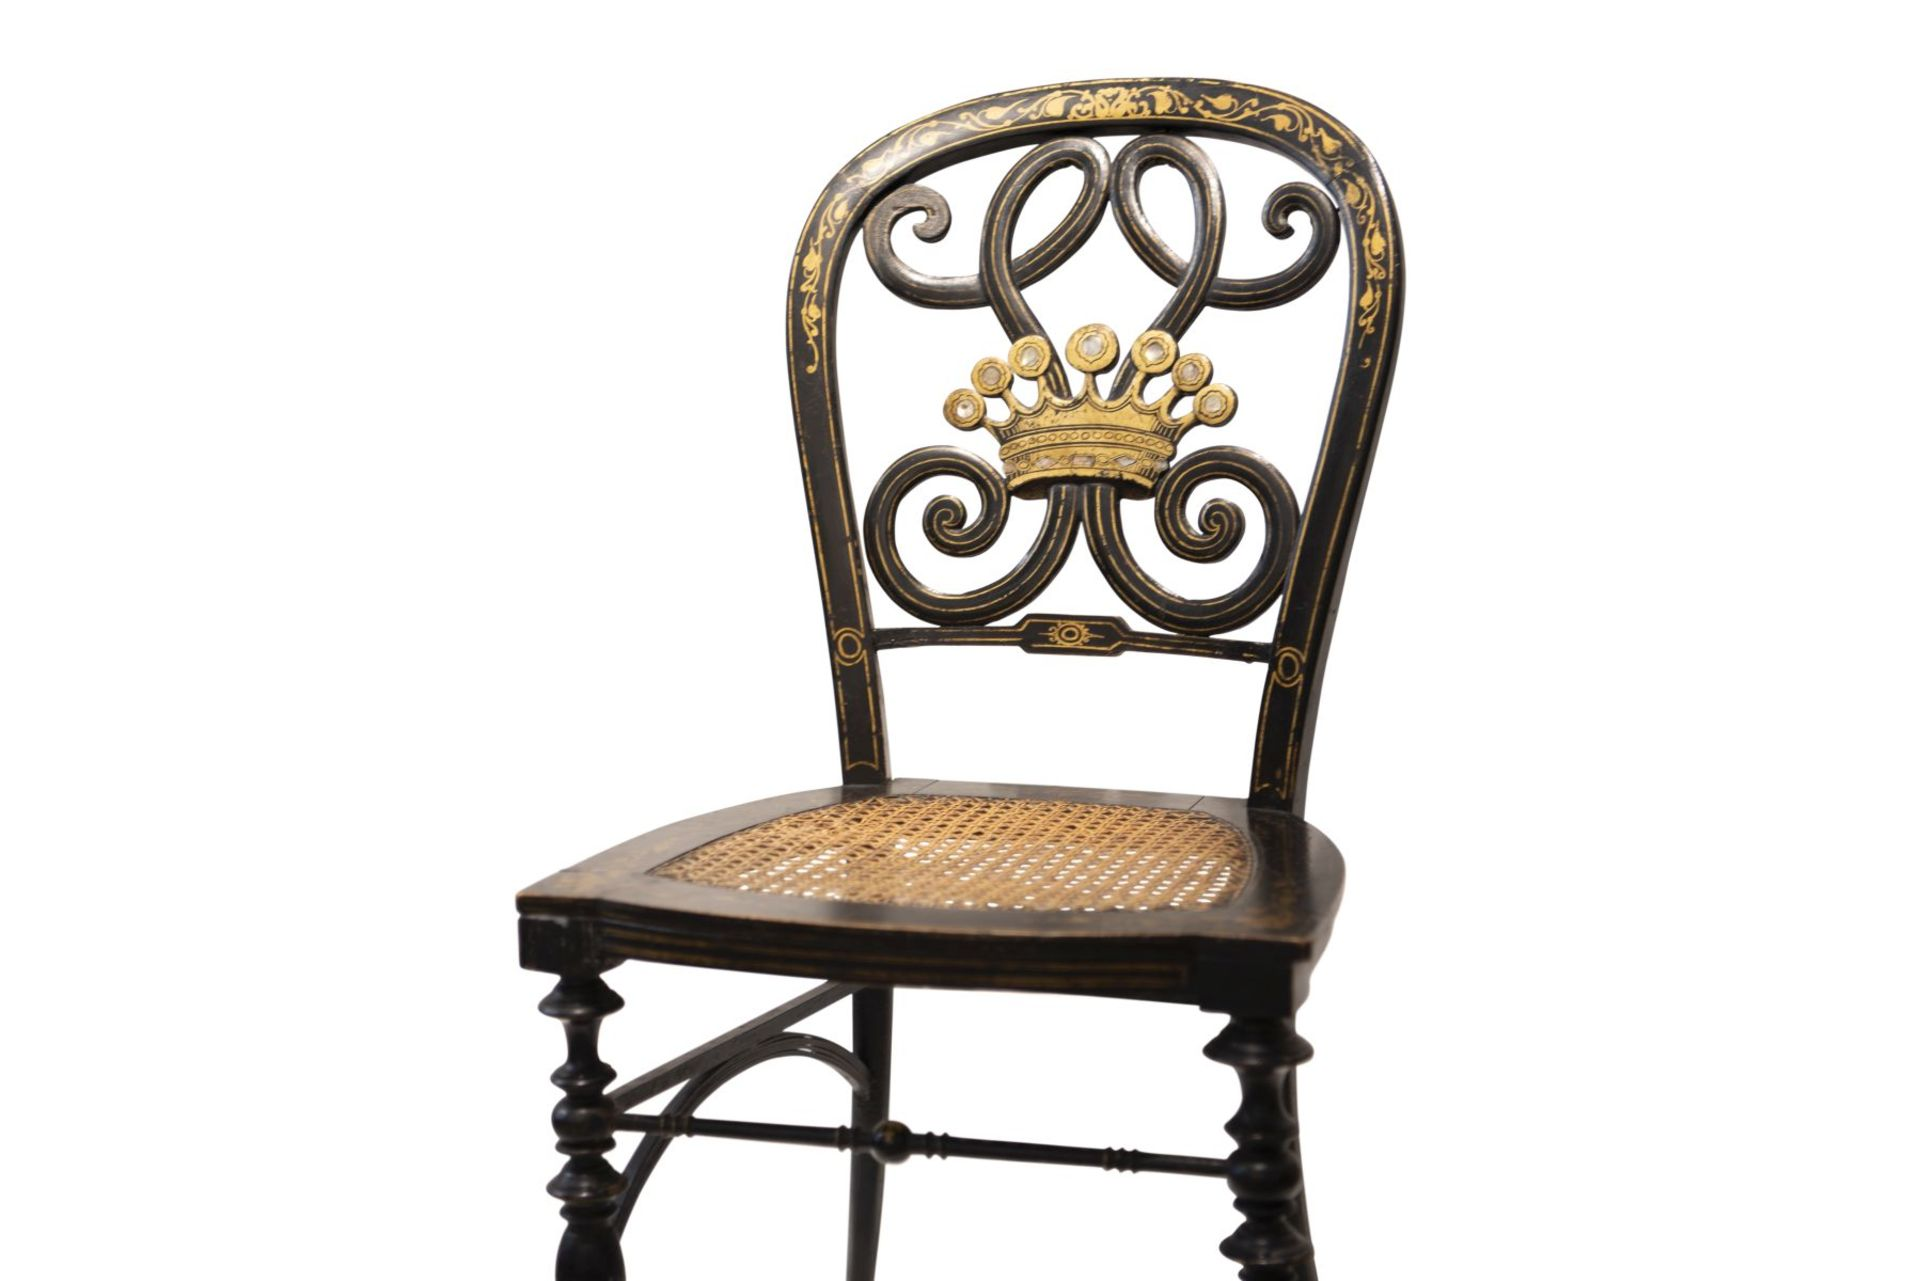 Decorative chair, French Chinoiserie - Image 2 of 7